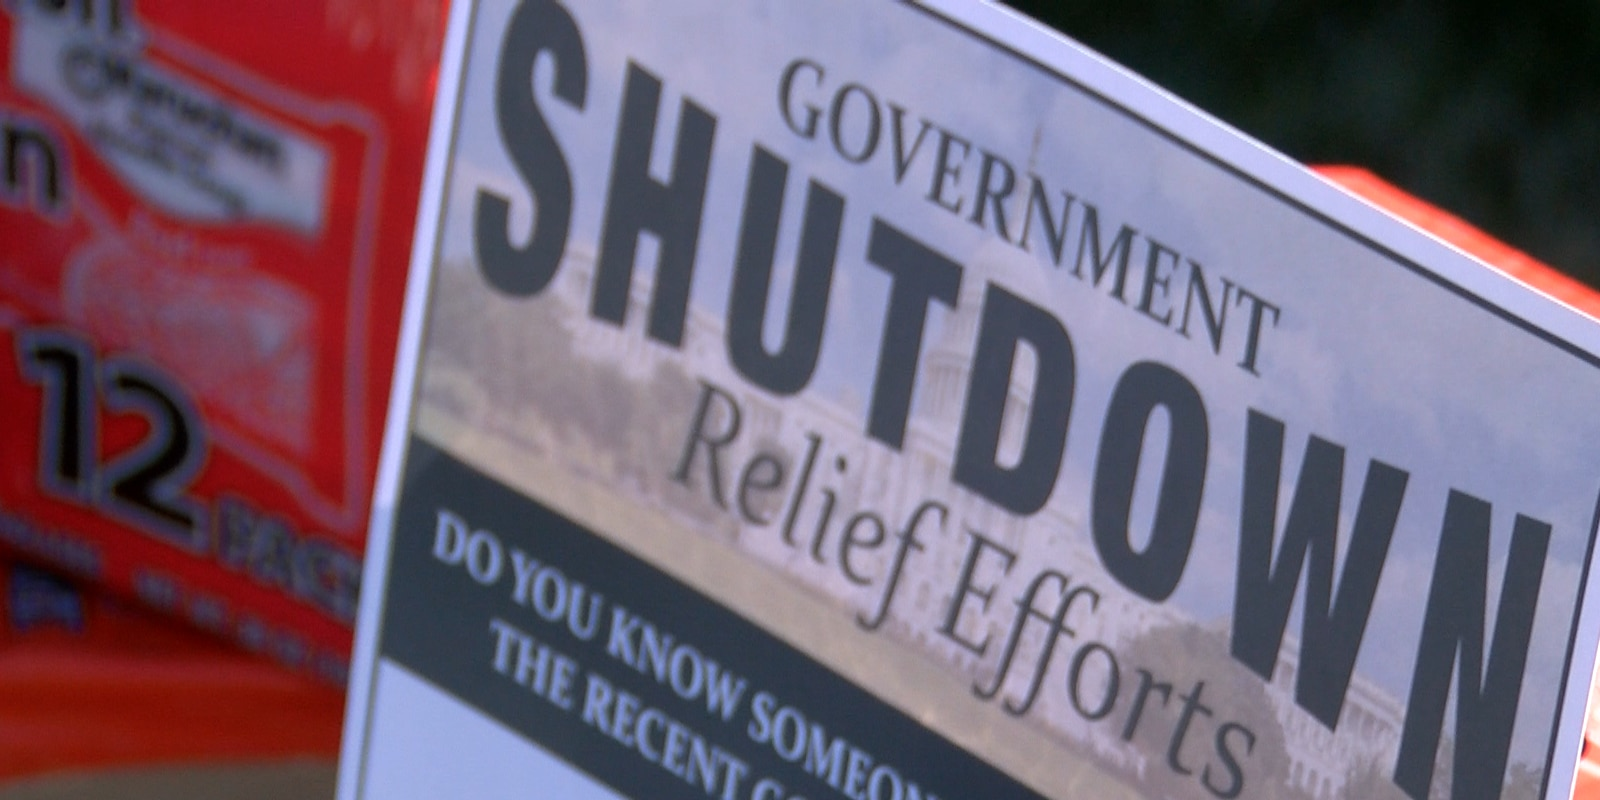 How to help families affected by the government shutdown